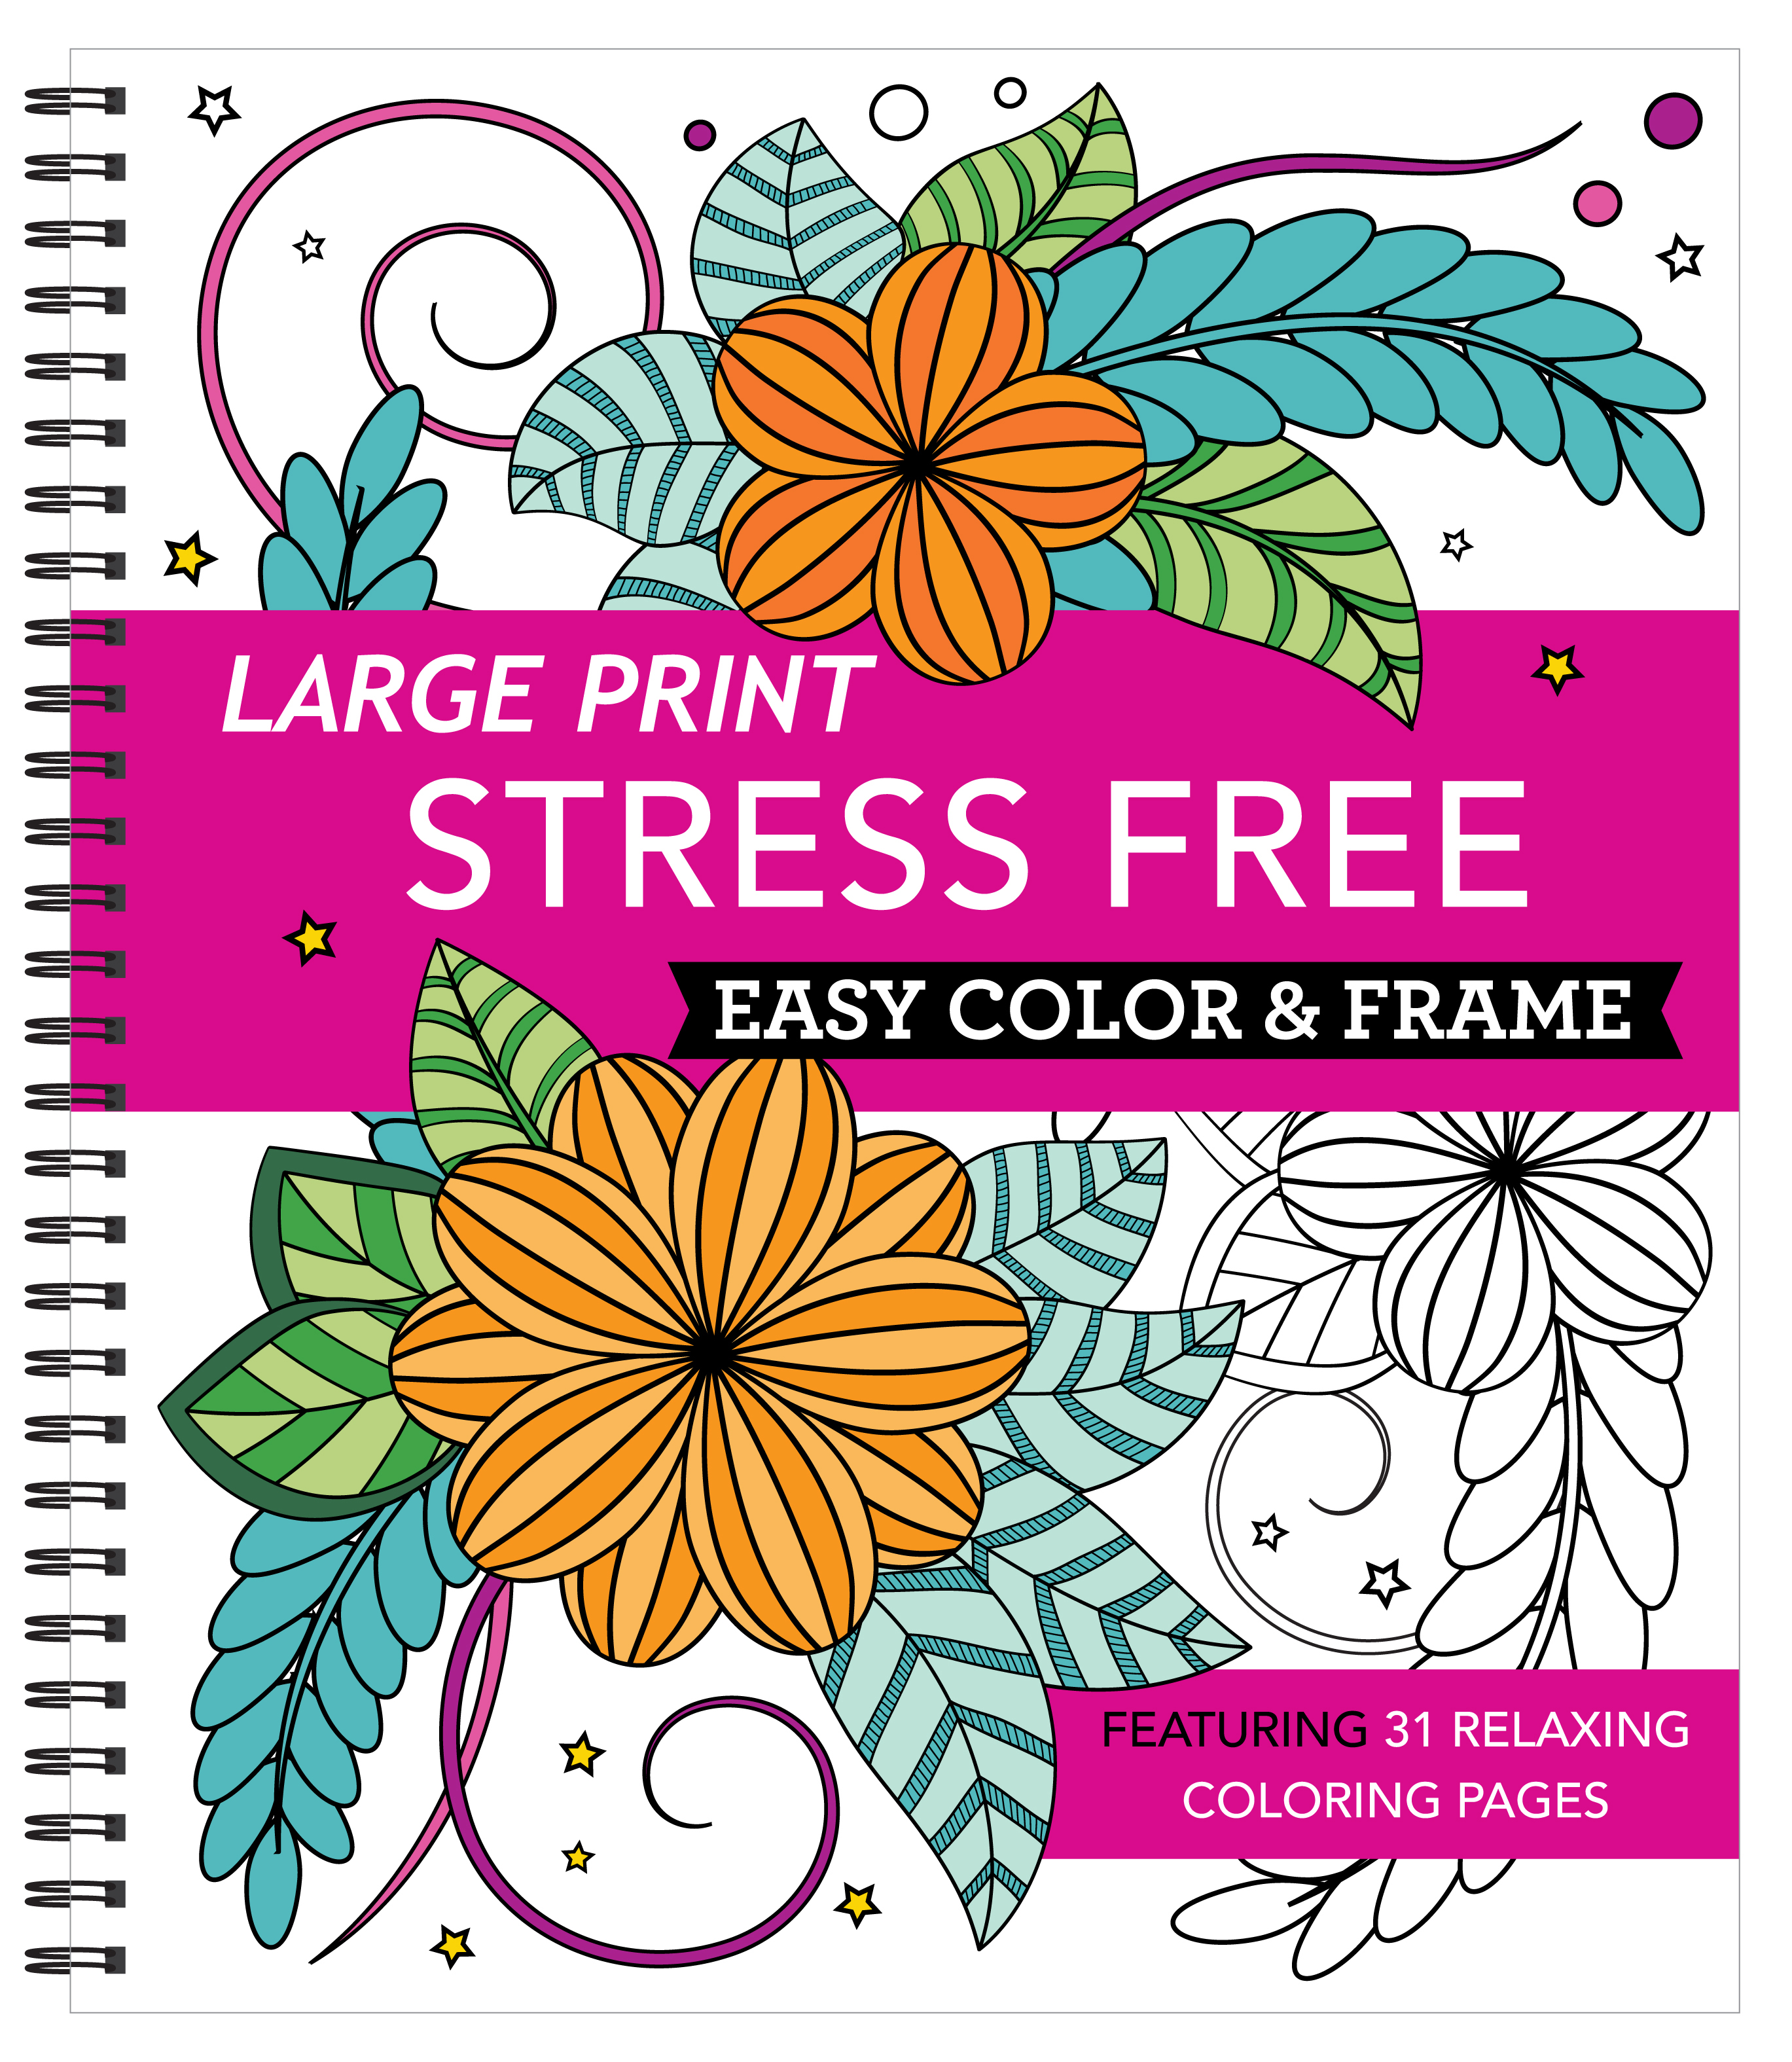 Epub Large Print Easy Color Frame Stress Free Adult Coloring Book Book By New Seasons Uyisartdpdf